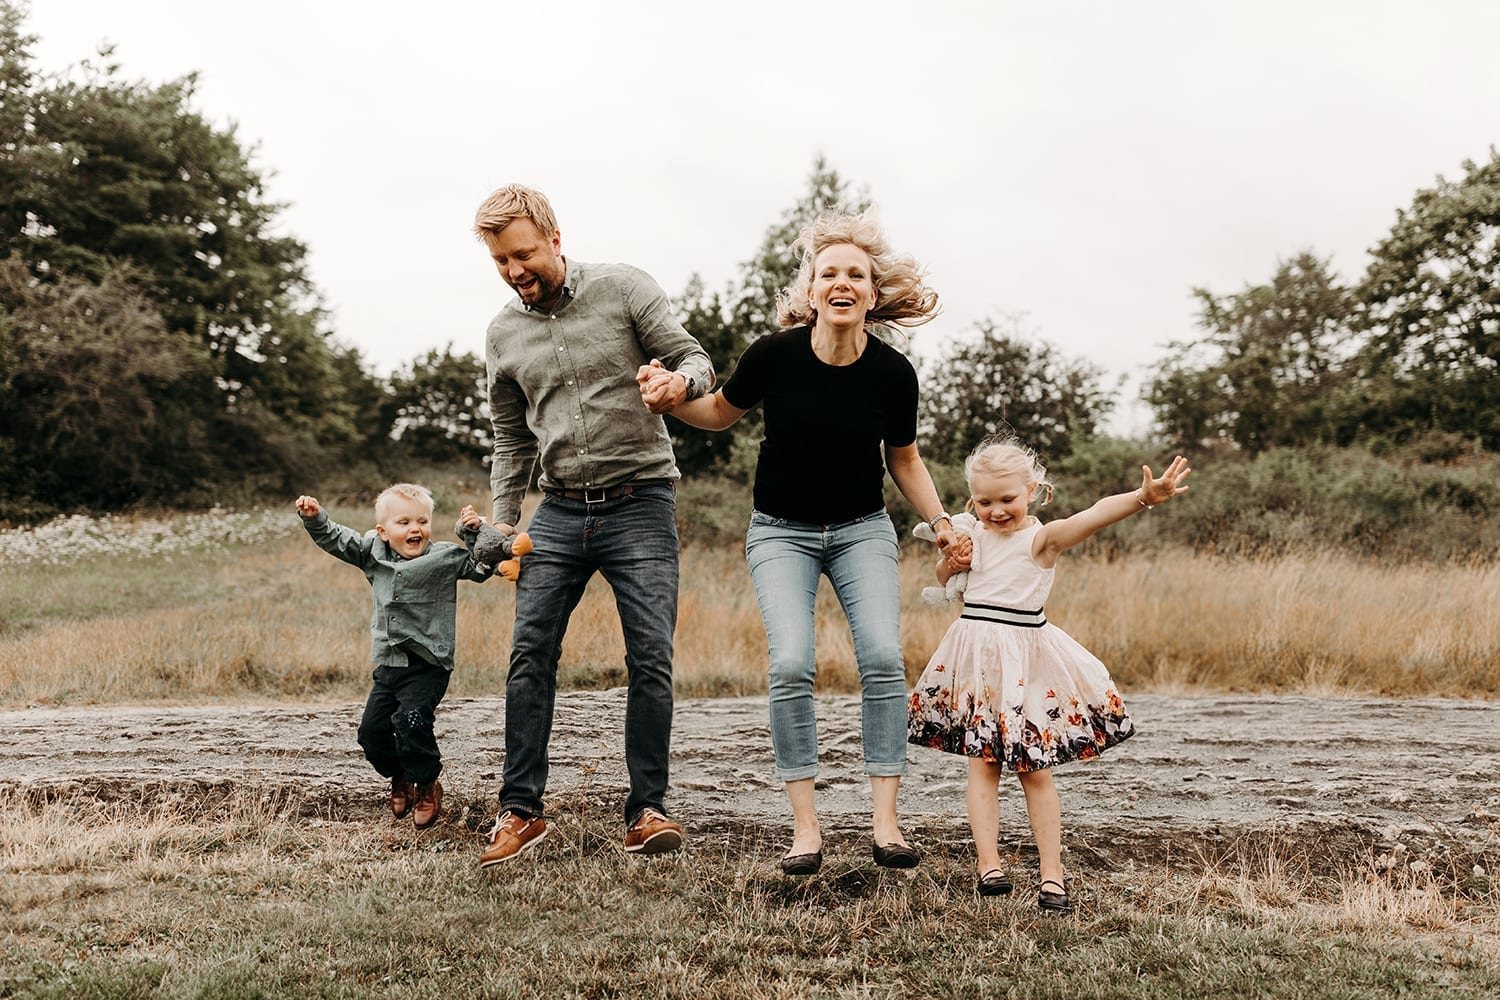 outdoor lifestyle family session with two kids jumping and having fun